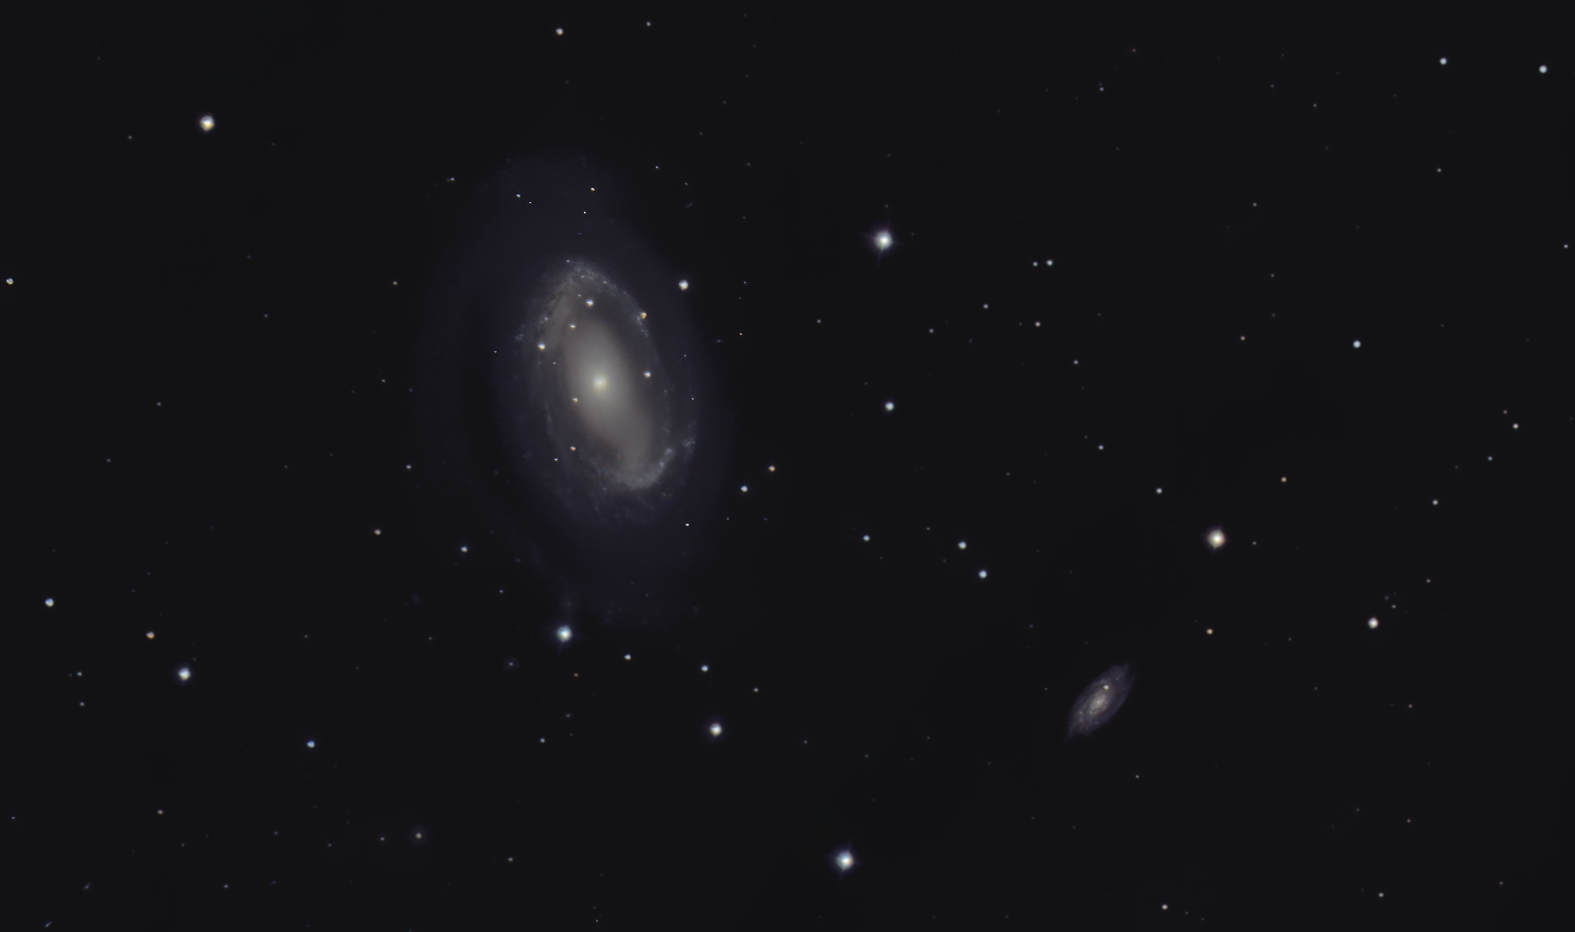 ngc 4725 avril 1-denoise.png